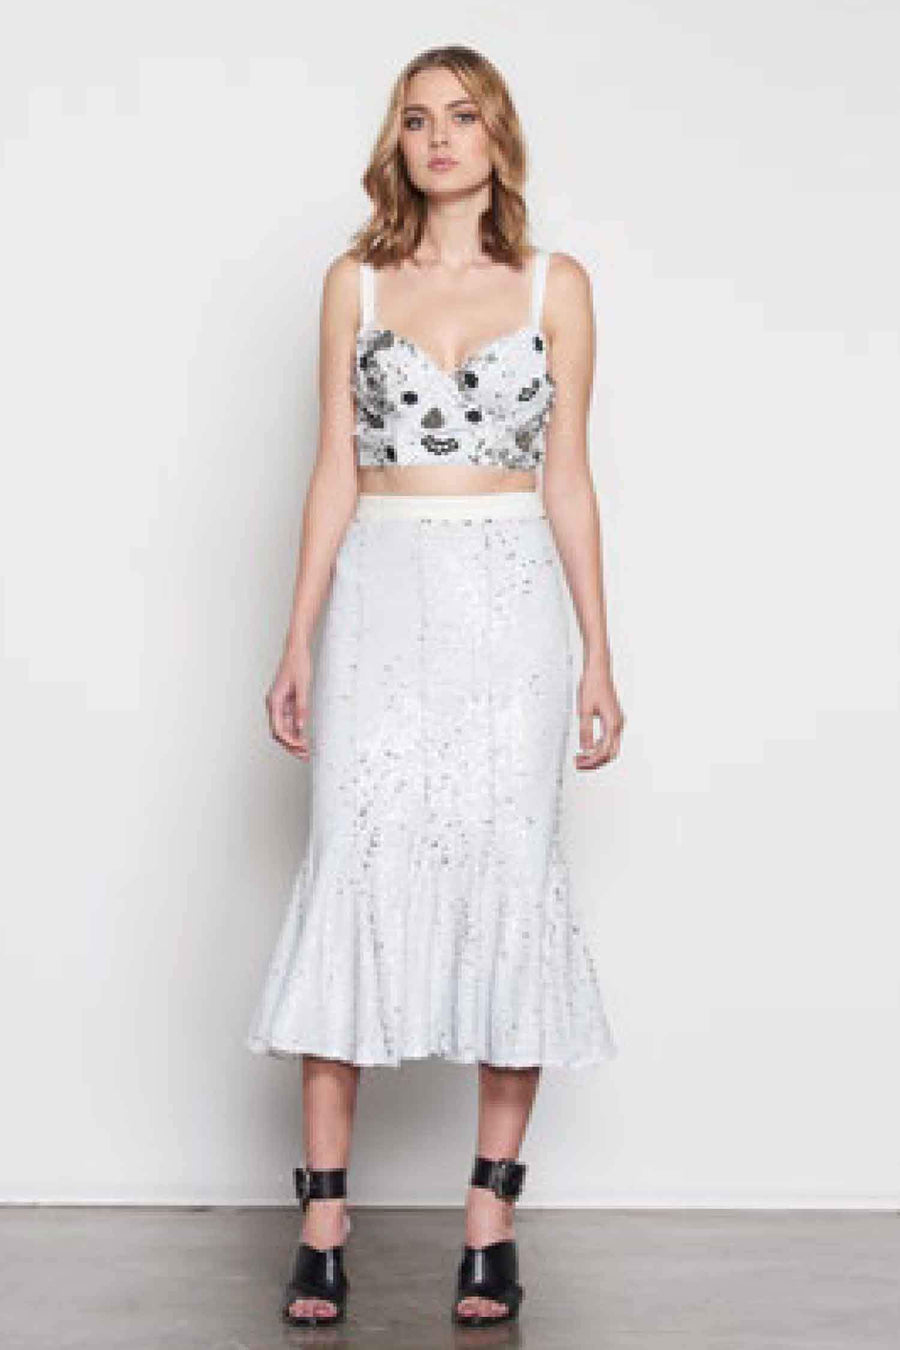 Another Language Midi Skirt by Isla by Talulah Frockaholics.com